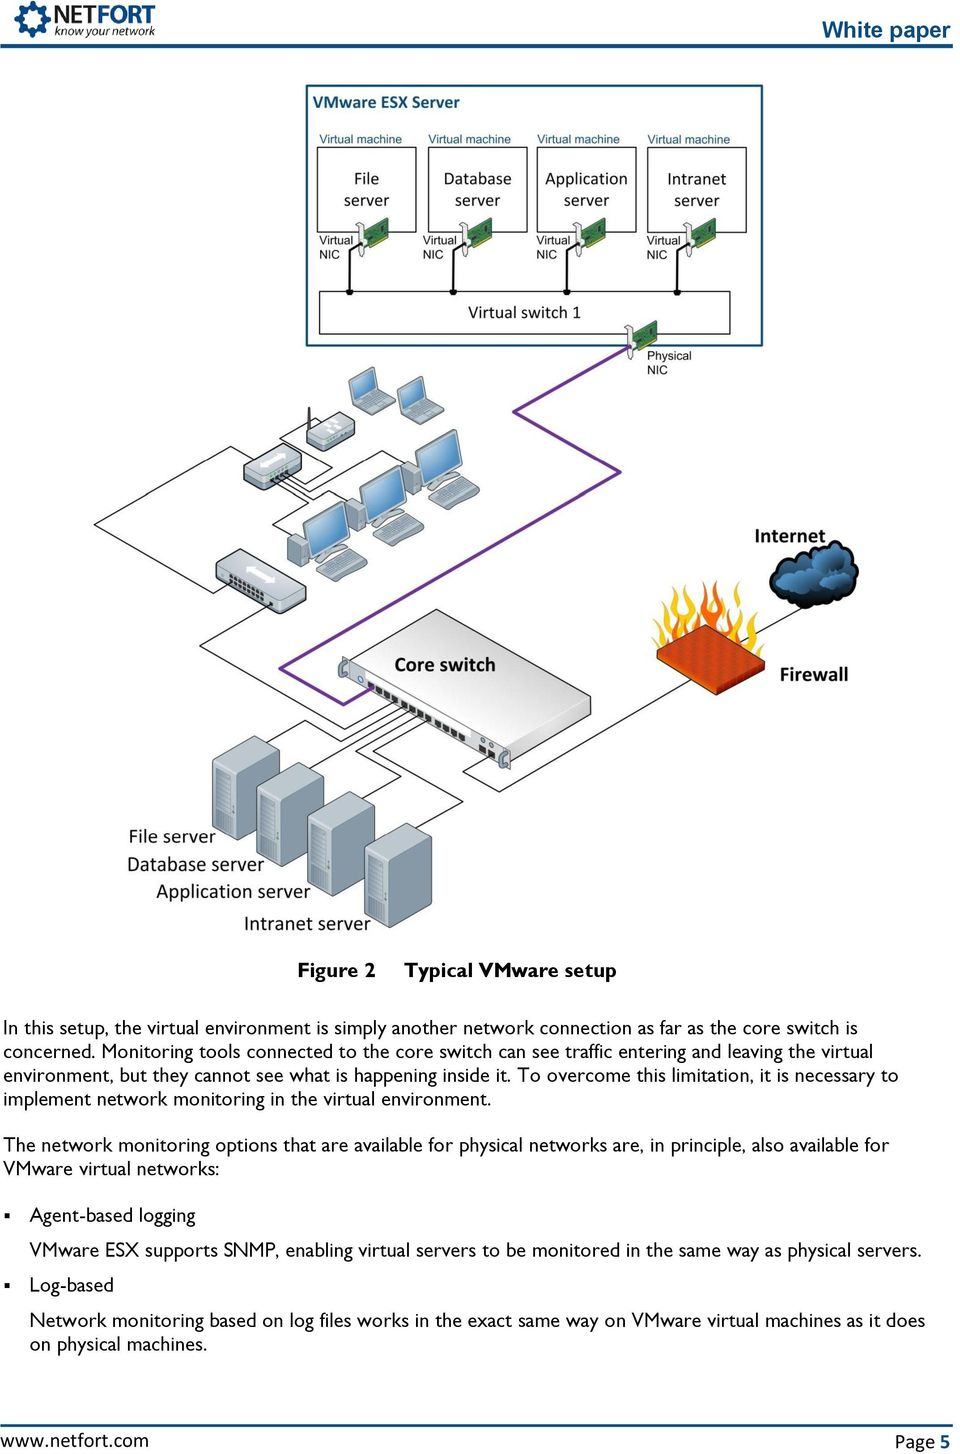 To overcome this limitation, it is necessary to implement network monitoring in the virtual environment.